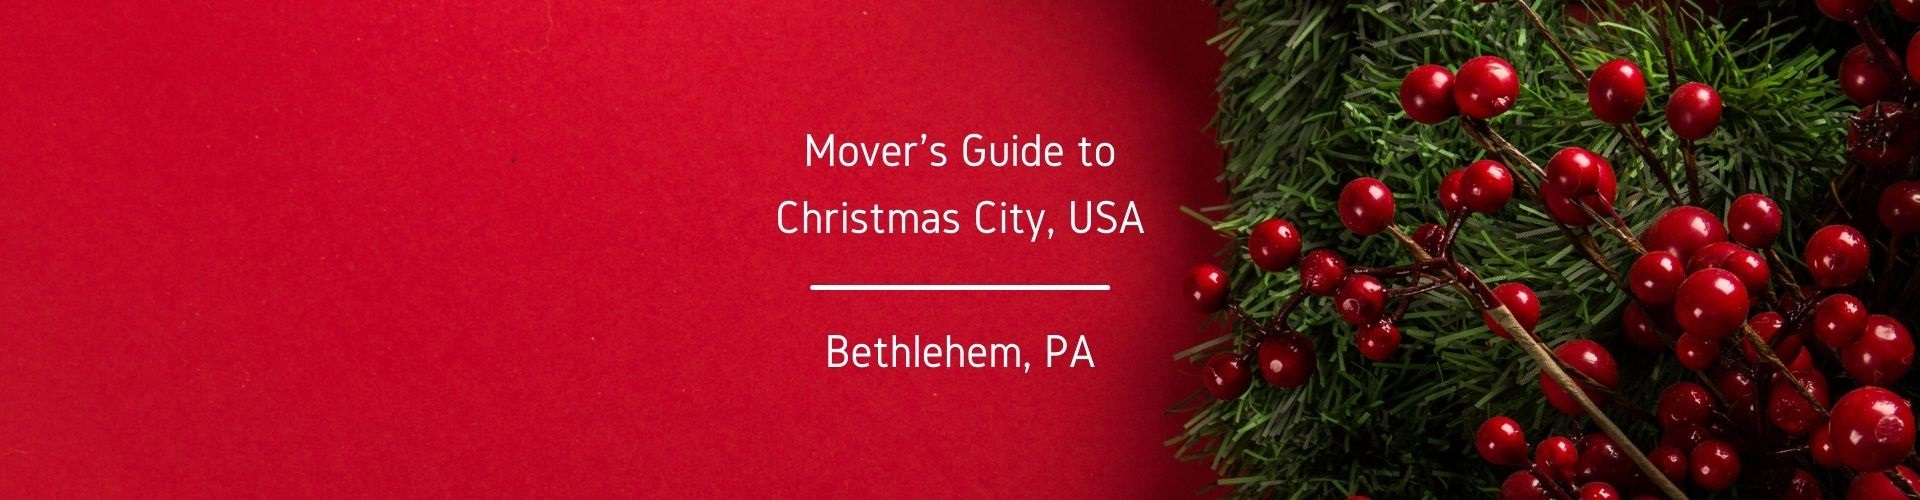 Mover's Guide to Bethlehem PA